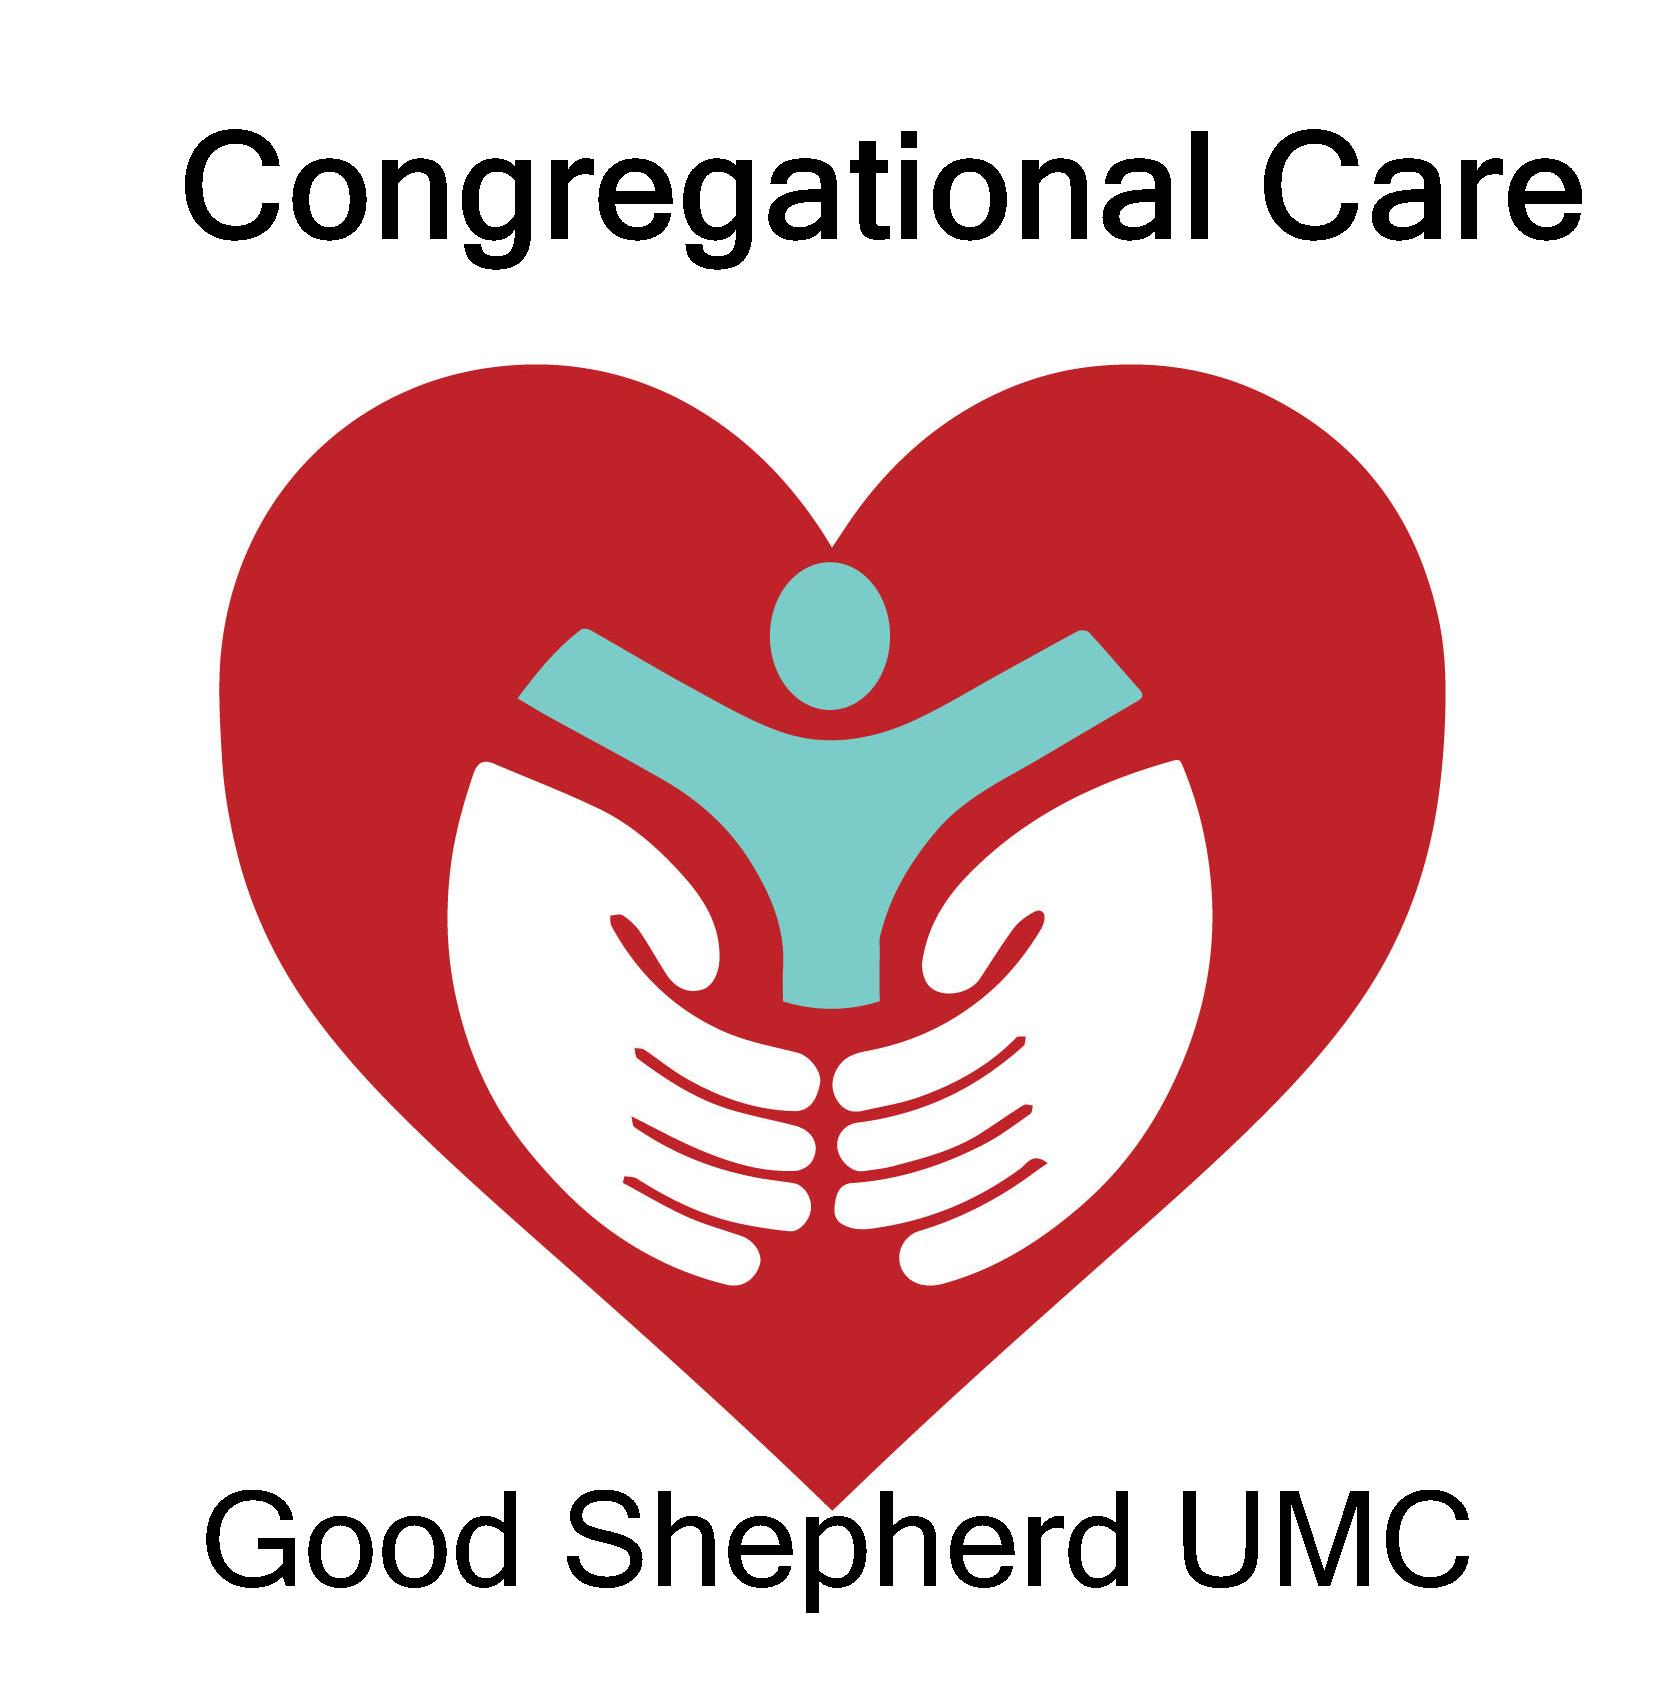 heart_14923c congreagational care